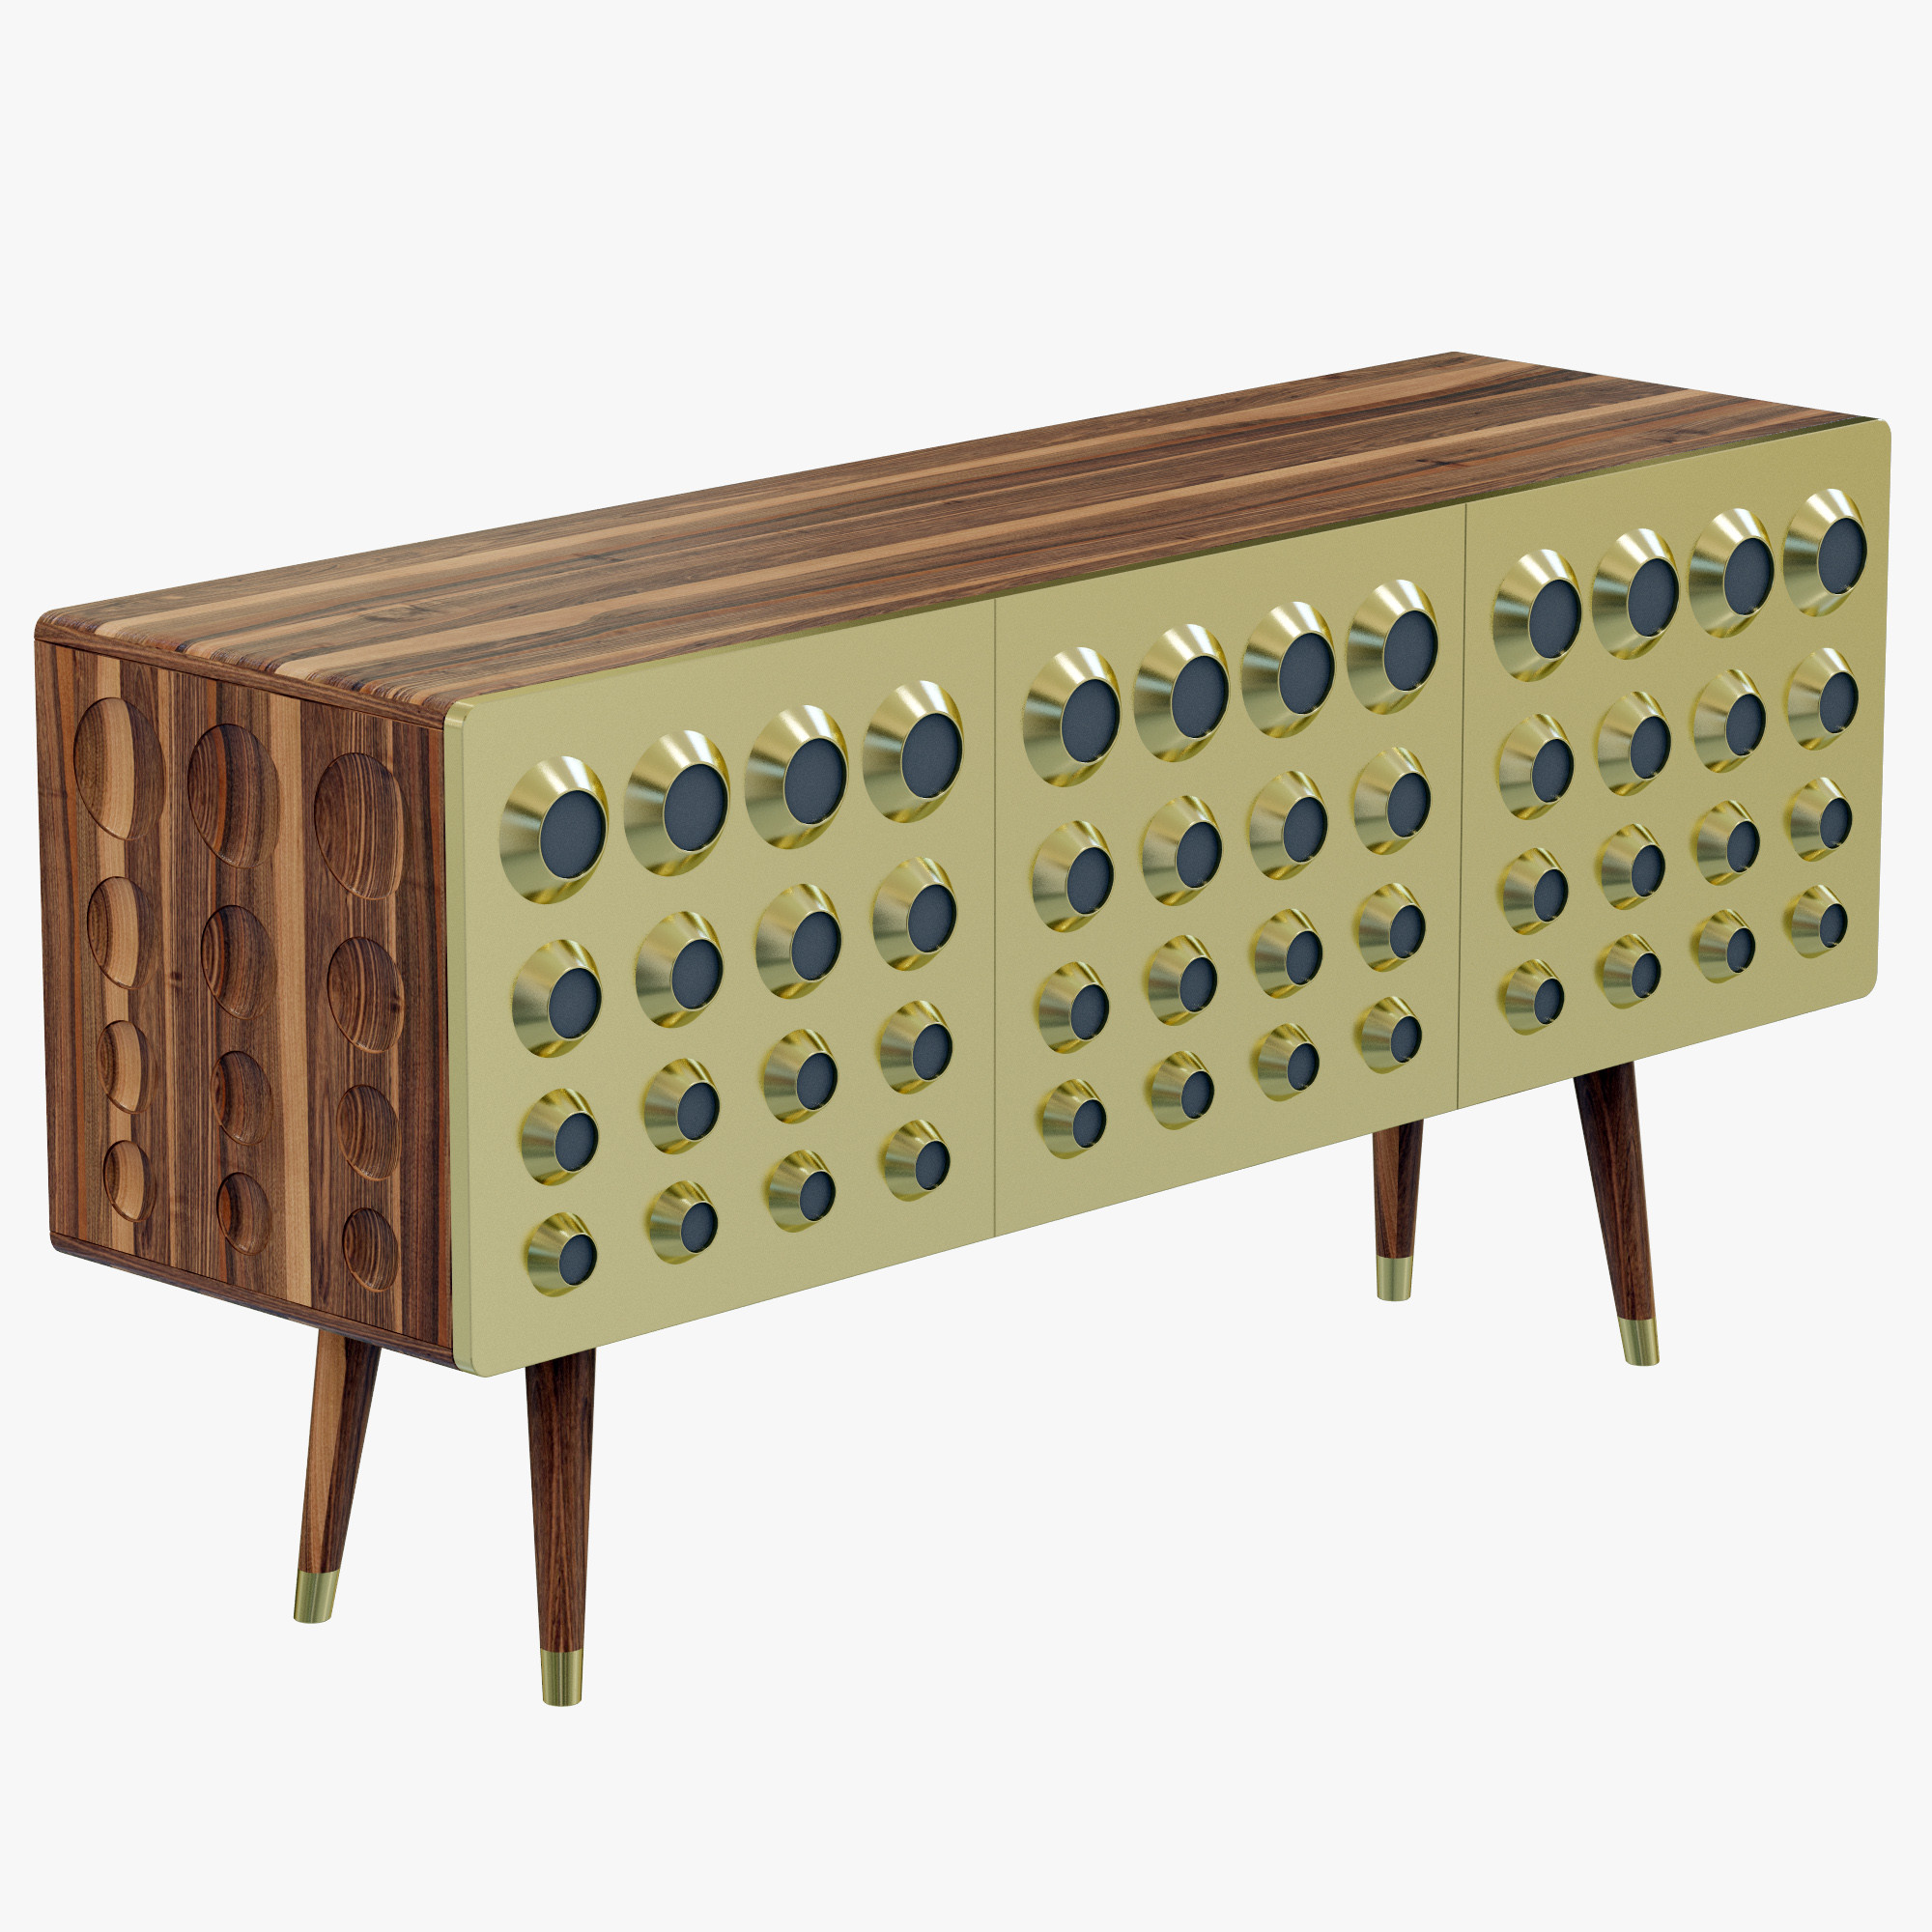 Monocles sideboard by Delightfull (5) mid century Essential Home Brings Back to Life Mid Century Furniture in Style delightfullMONOCLESSIDEBOARD2